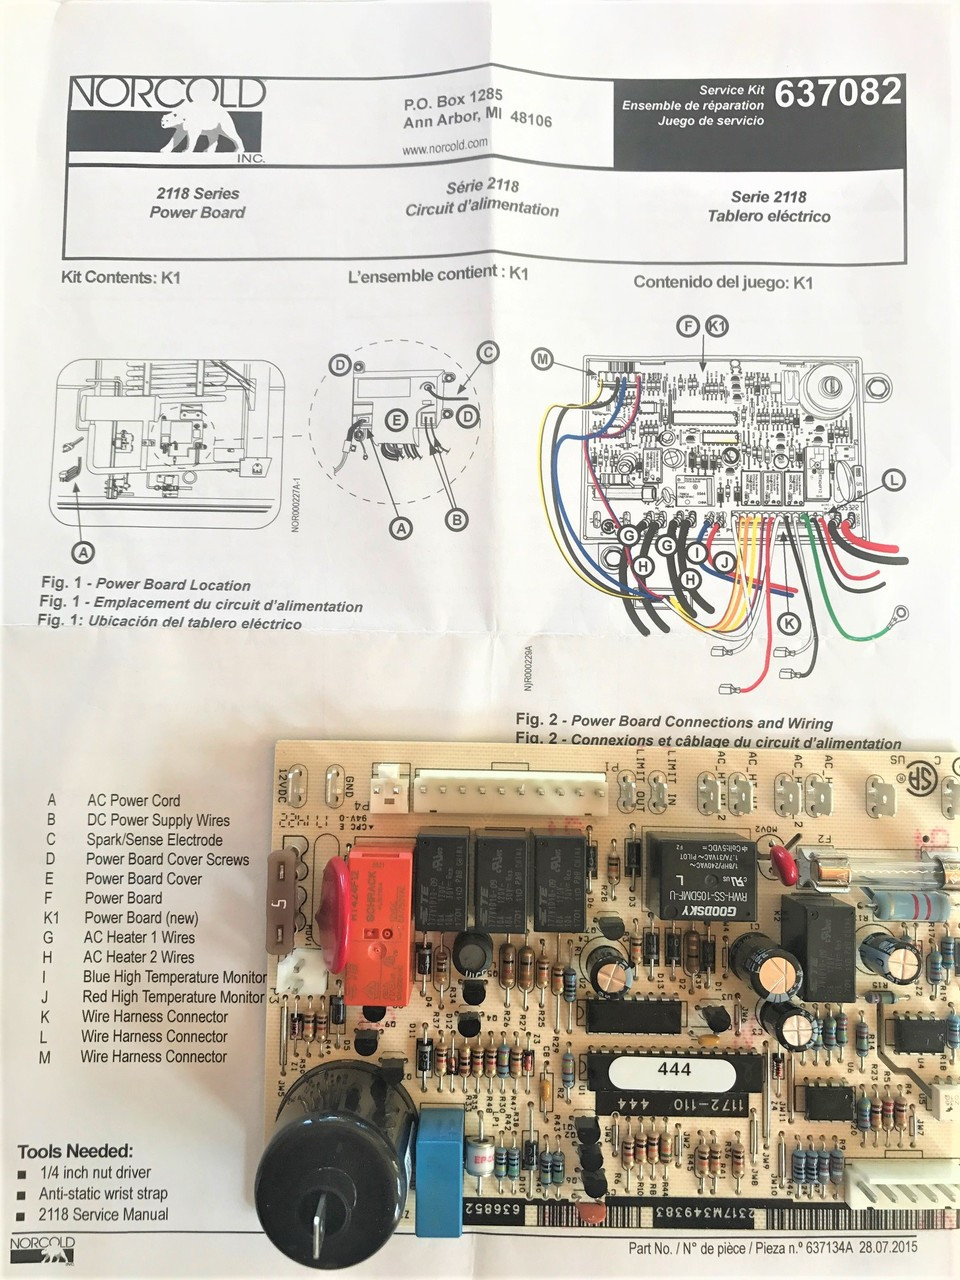 Norcold Refrigerator Wiring Diagram 35 Images Circuit Img 0059 2 66296150427922312801280c2 Model N621 Rv